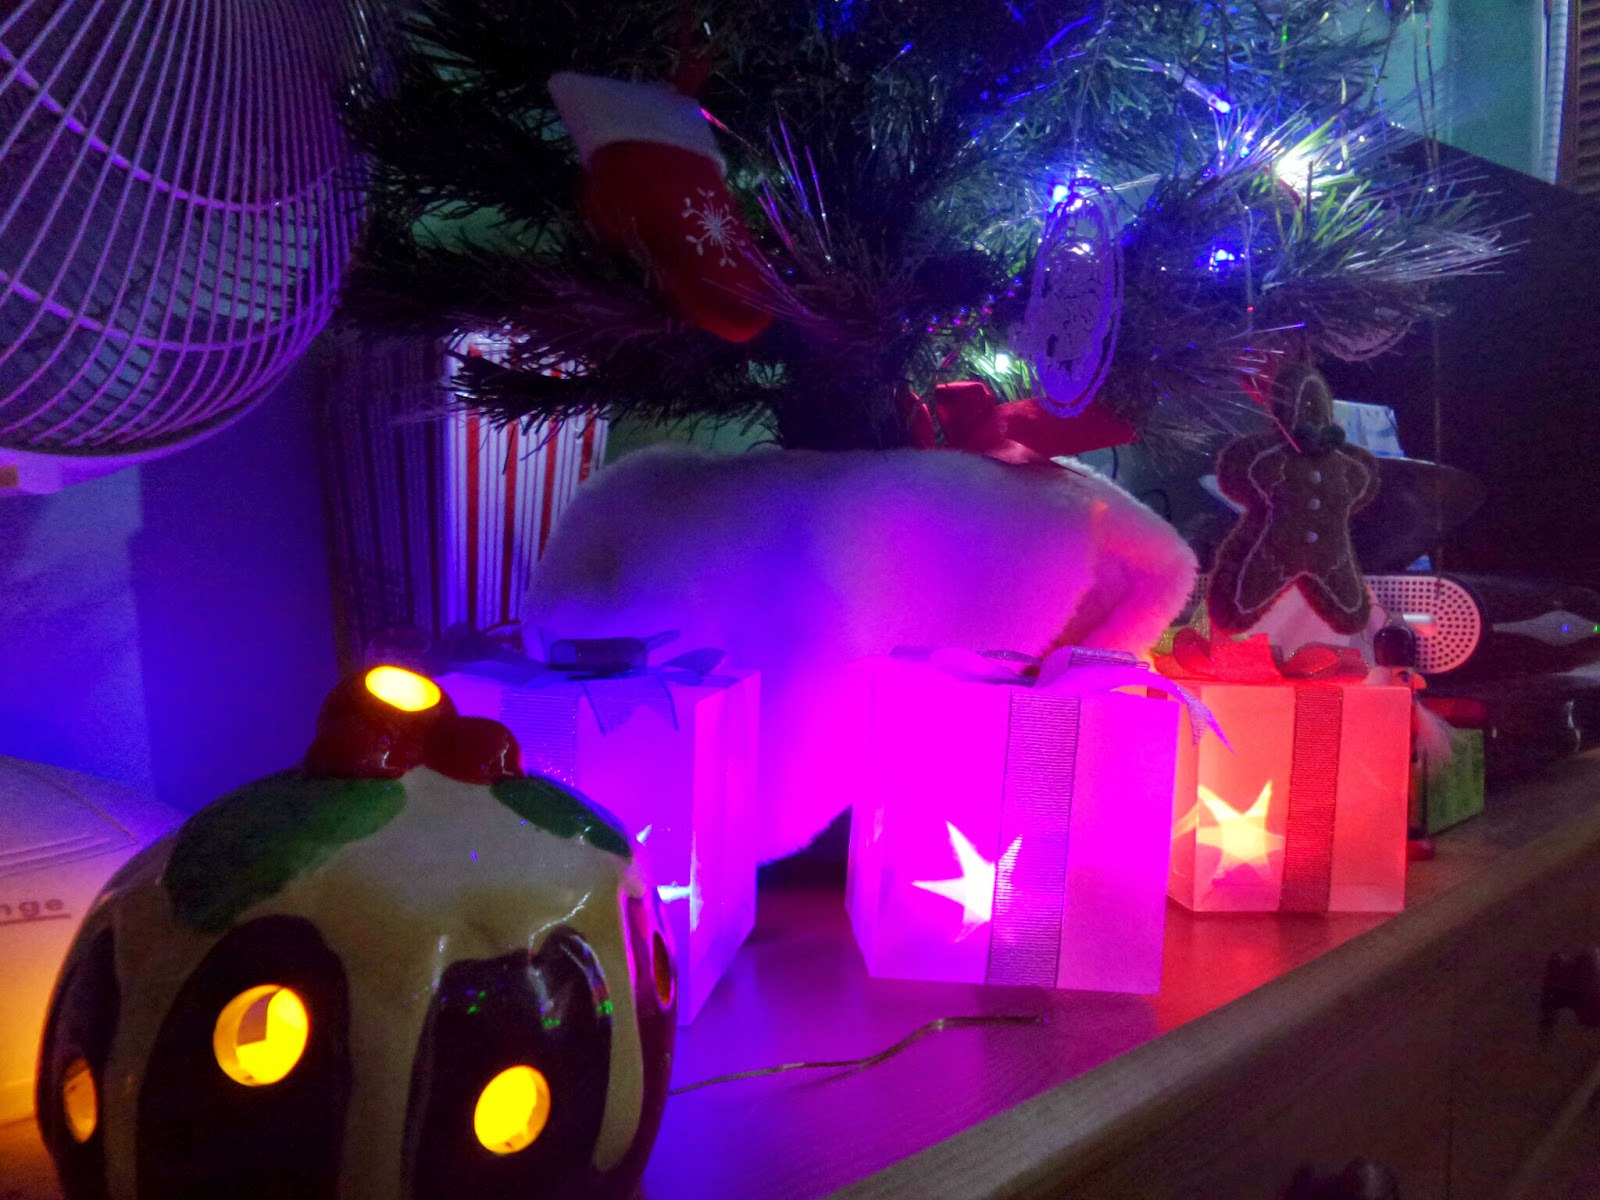 Light up gifts under the Christmas tree (and a tealight candle holder Christmas pudding shaped!)